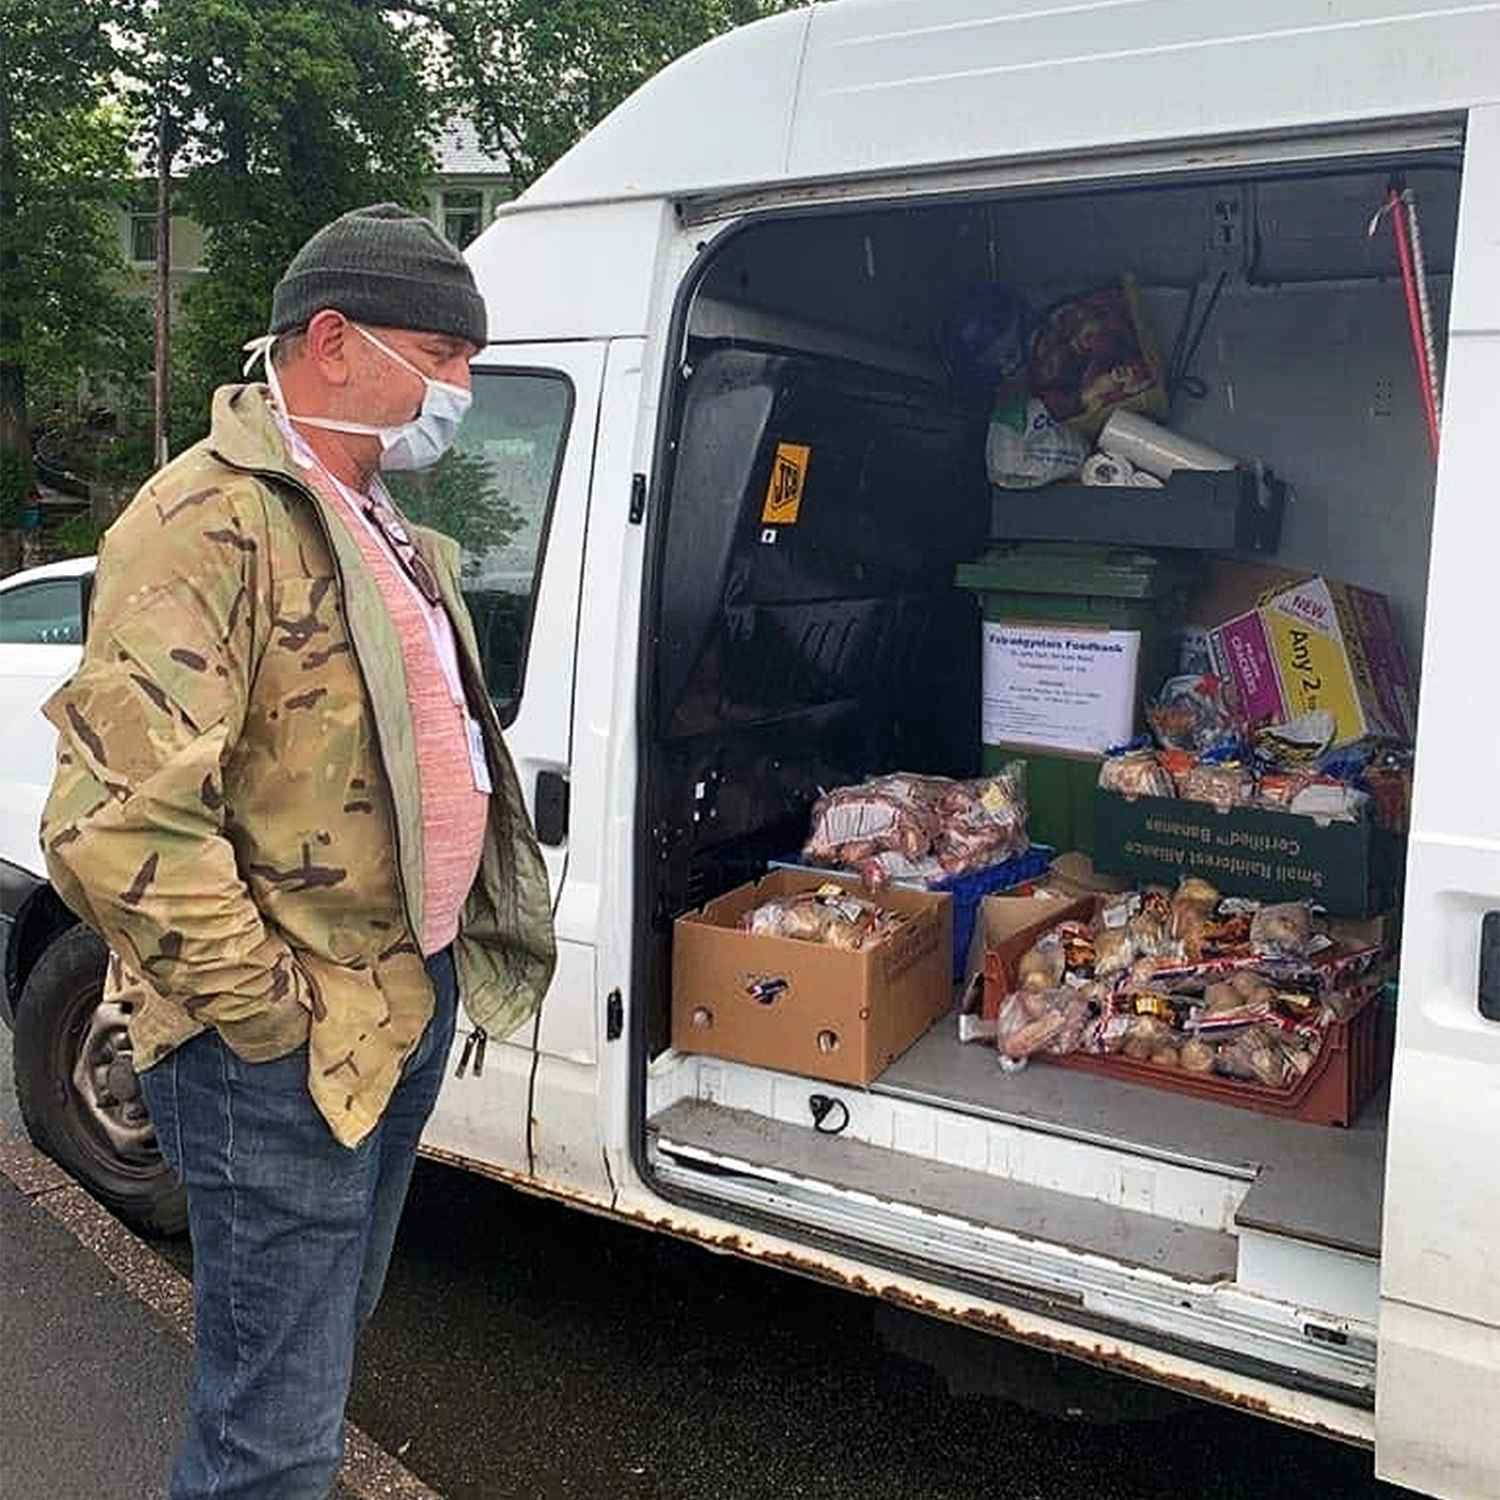 Image of a man stood next to a van serving foodbank food